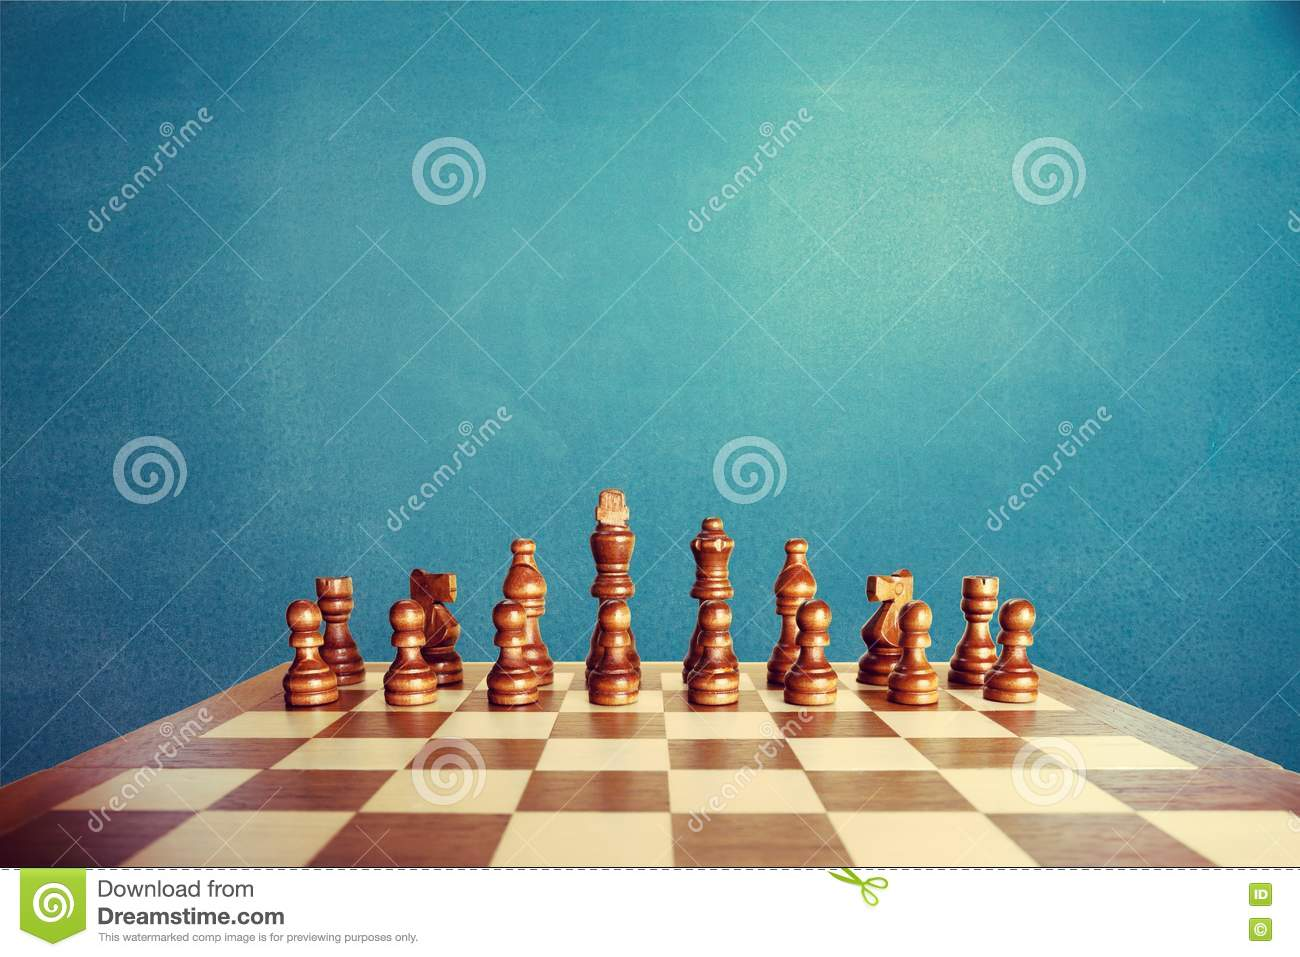 Chess game stock image  Image of rental, debt, down, move